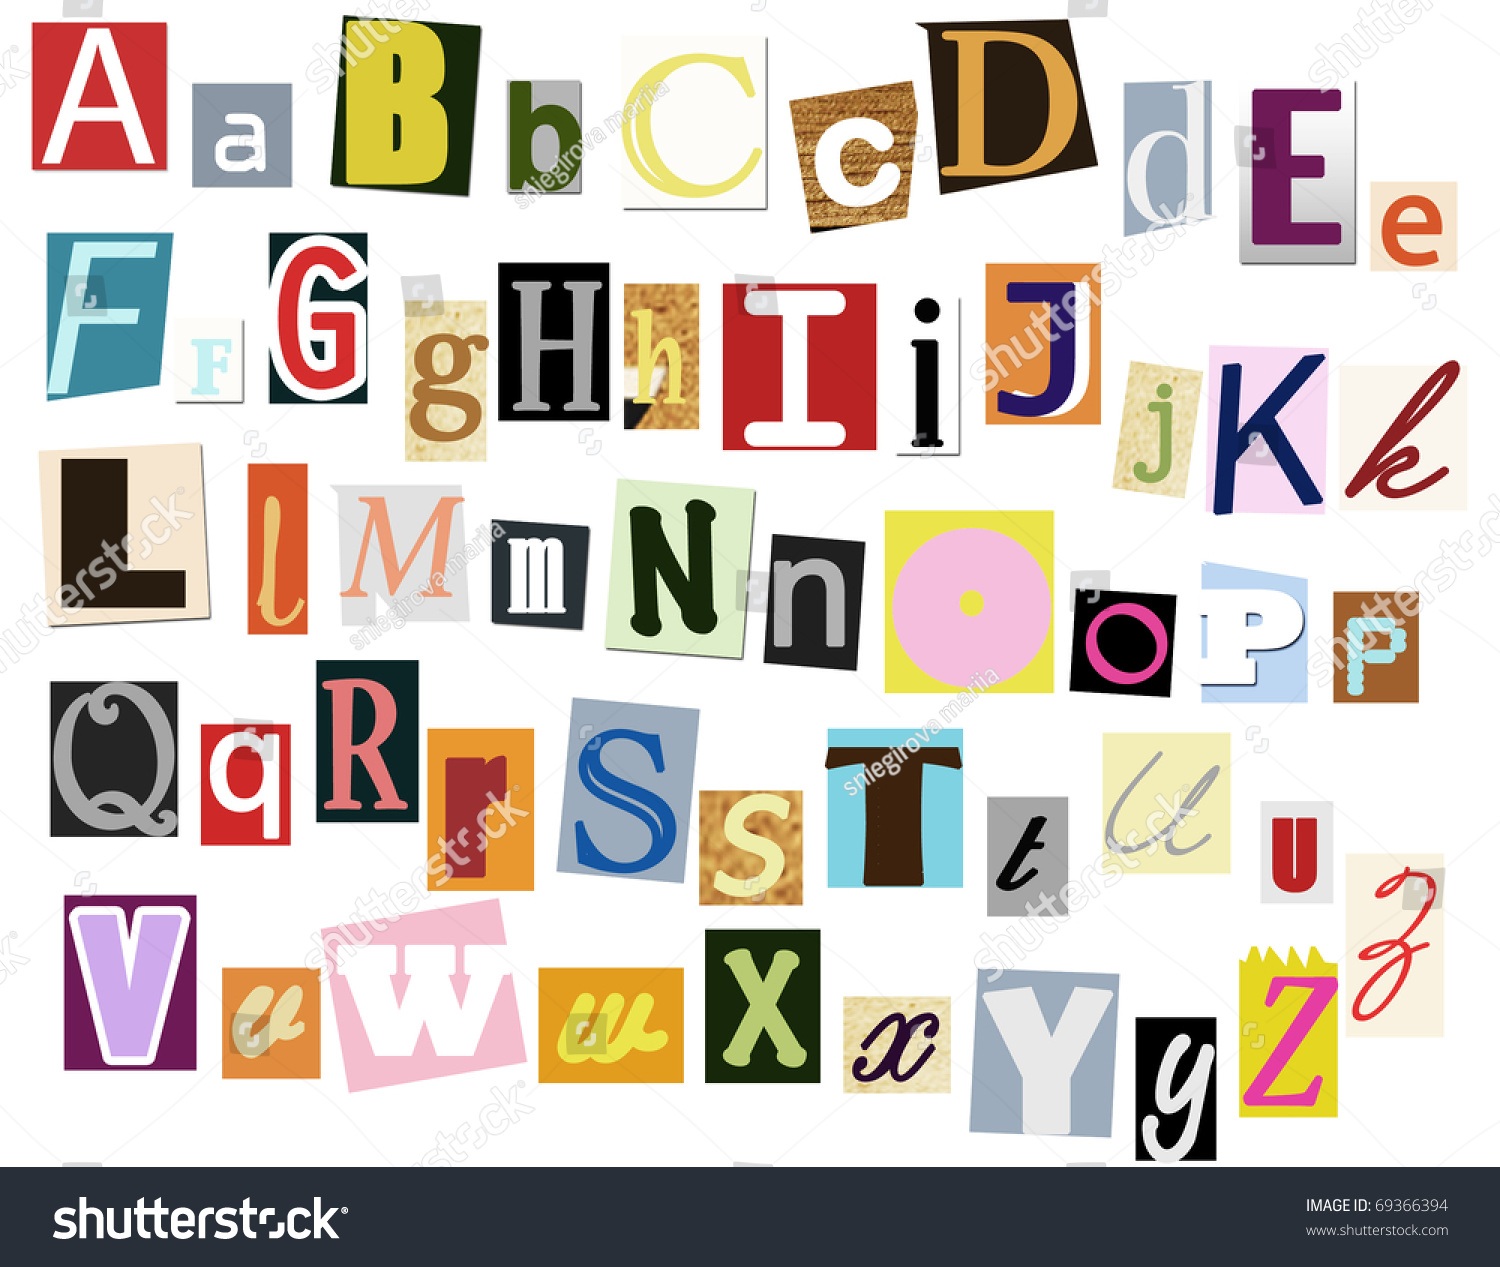 worksheet Letters In Alphabet colorful typography alphabet letters stock illustration 69366394 letters